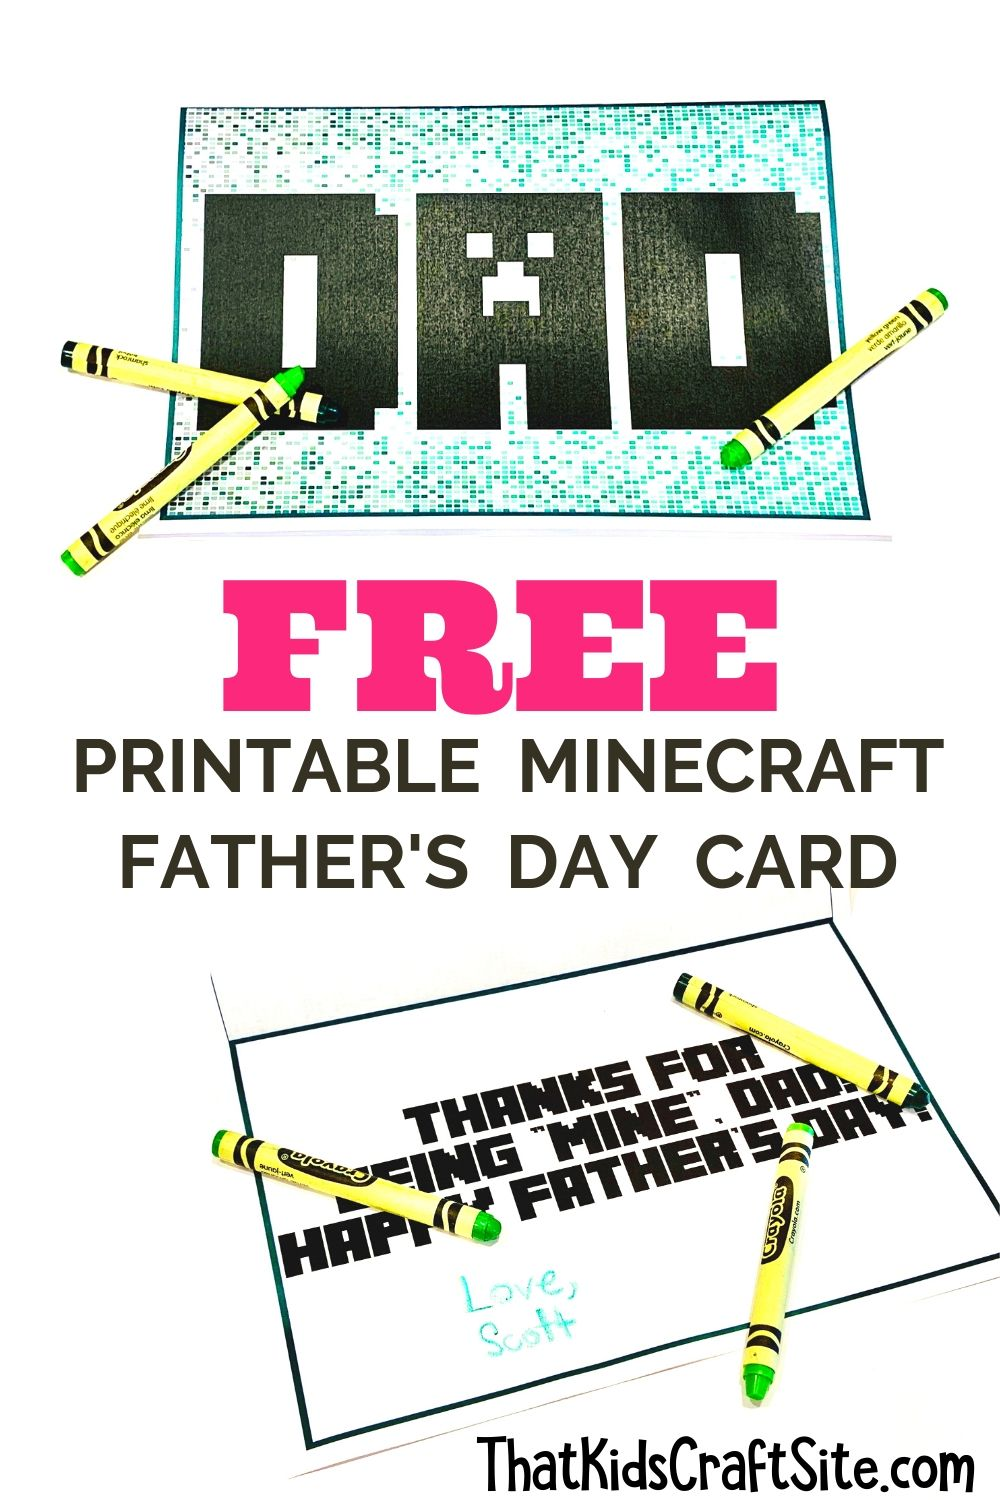 Free Printable Minecraft Father's Day Card